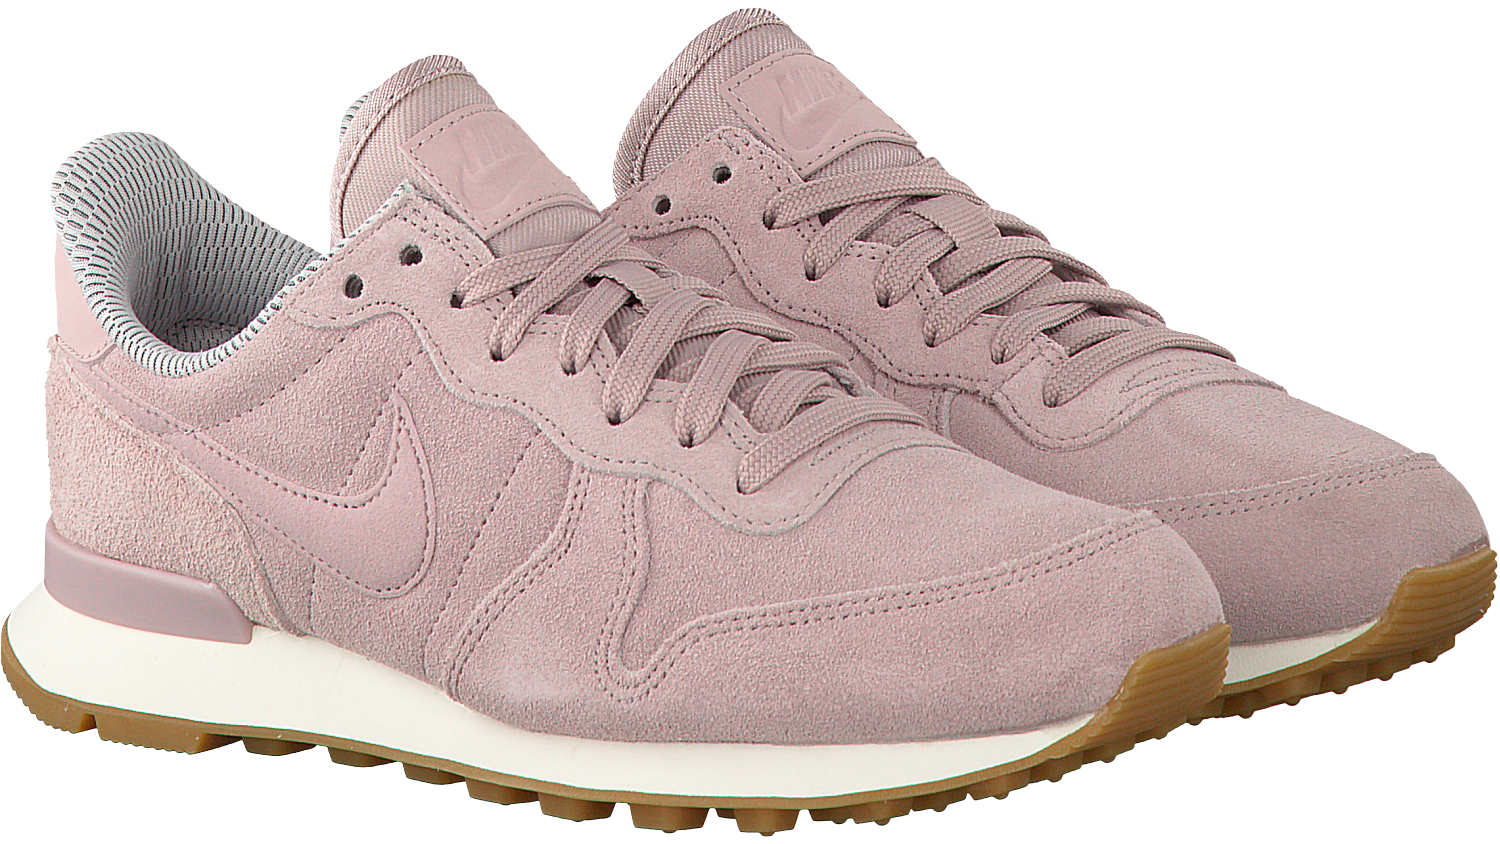 c0d9aa10794 Roze NIKE Sneakers INTERNATIONALISR SE WMNS - Omoda.nl